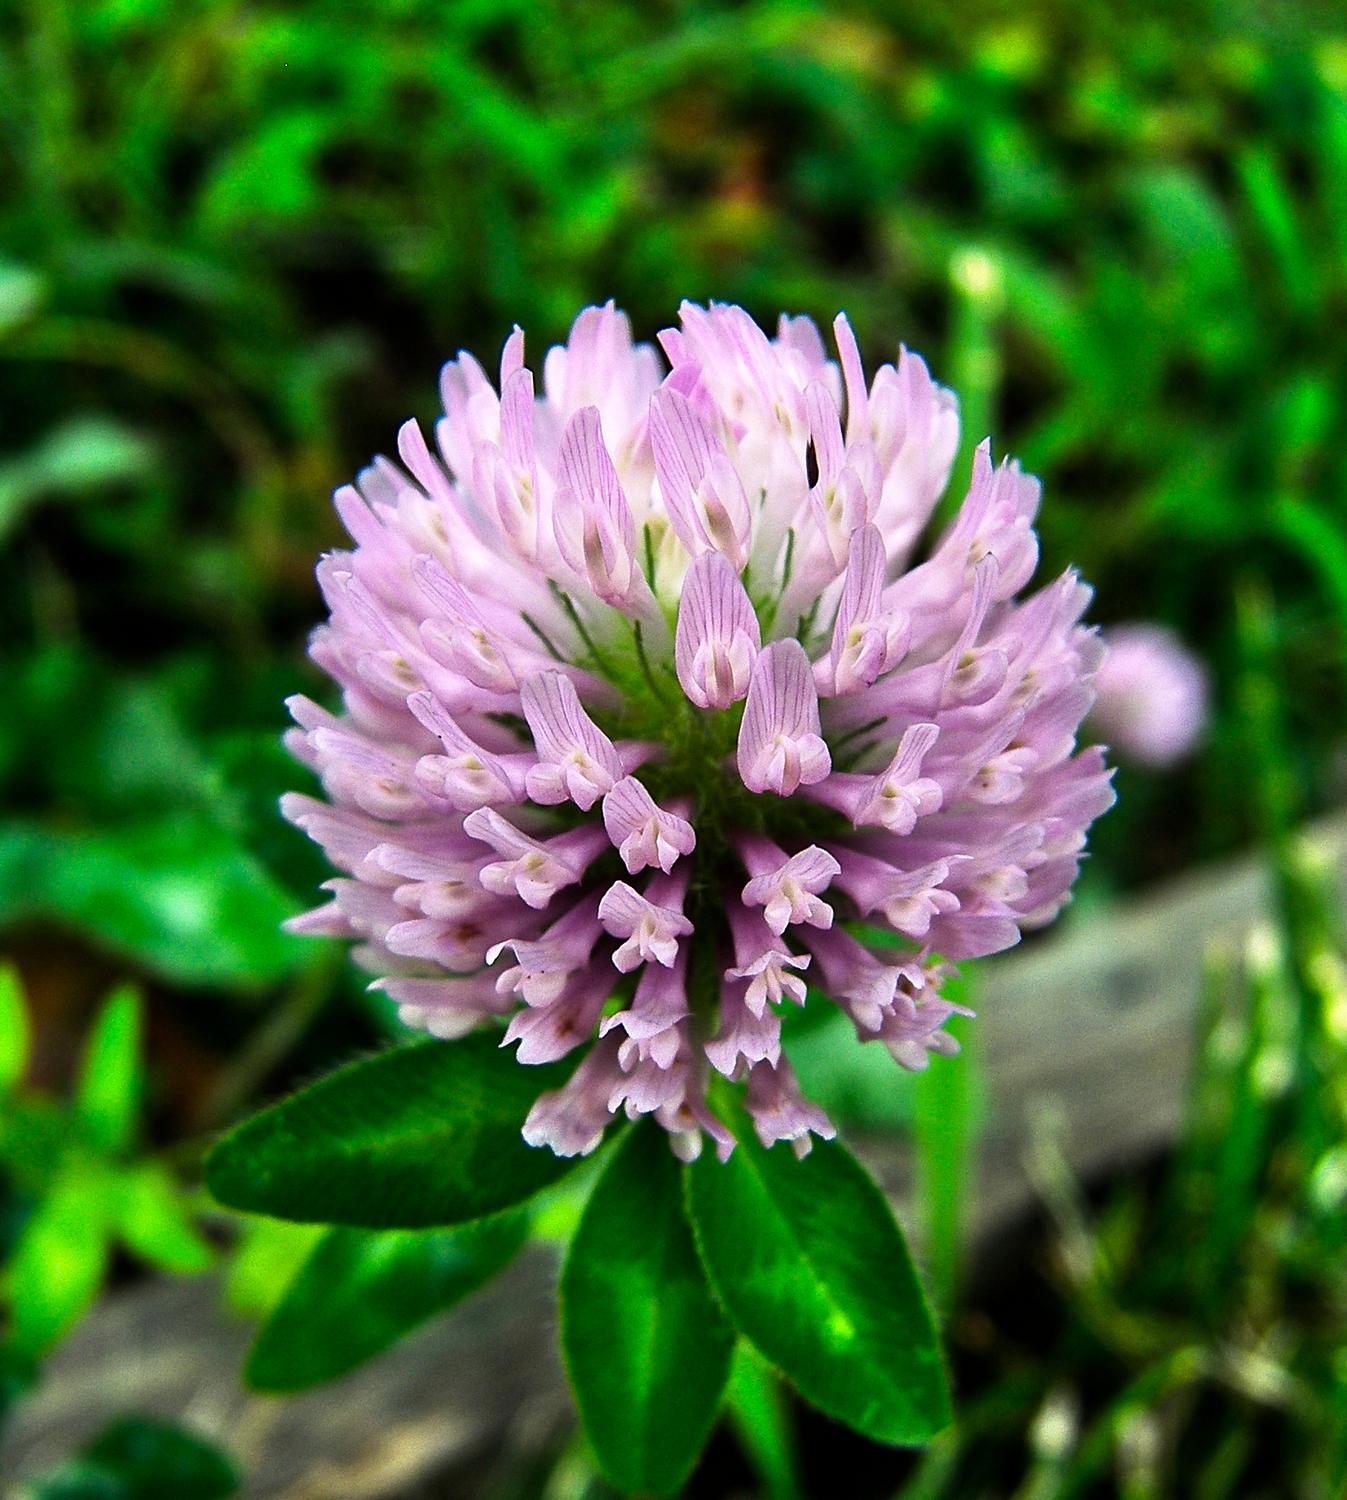 large pink clover - Clover - Kodak Easyshare P880 - - art  - photography - by Tony Karp